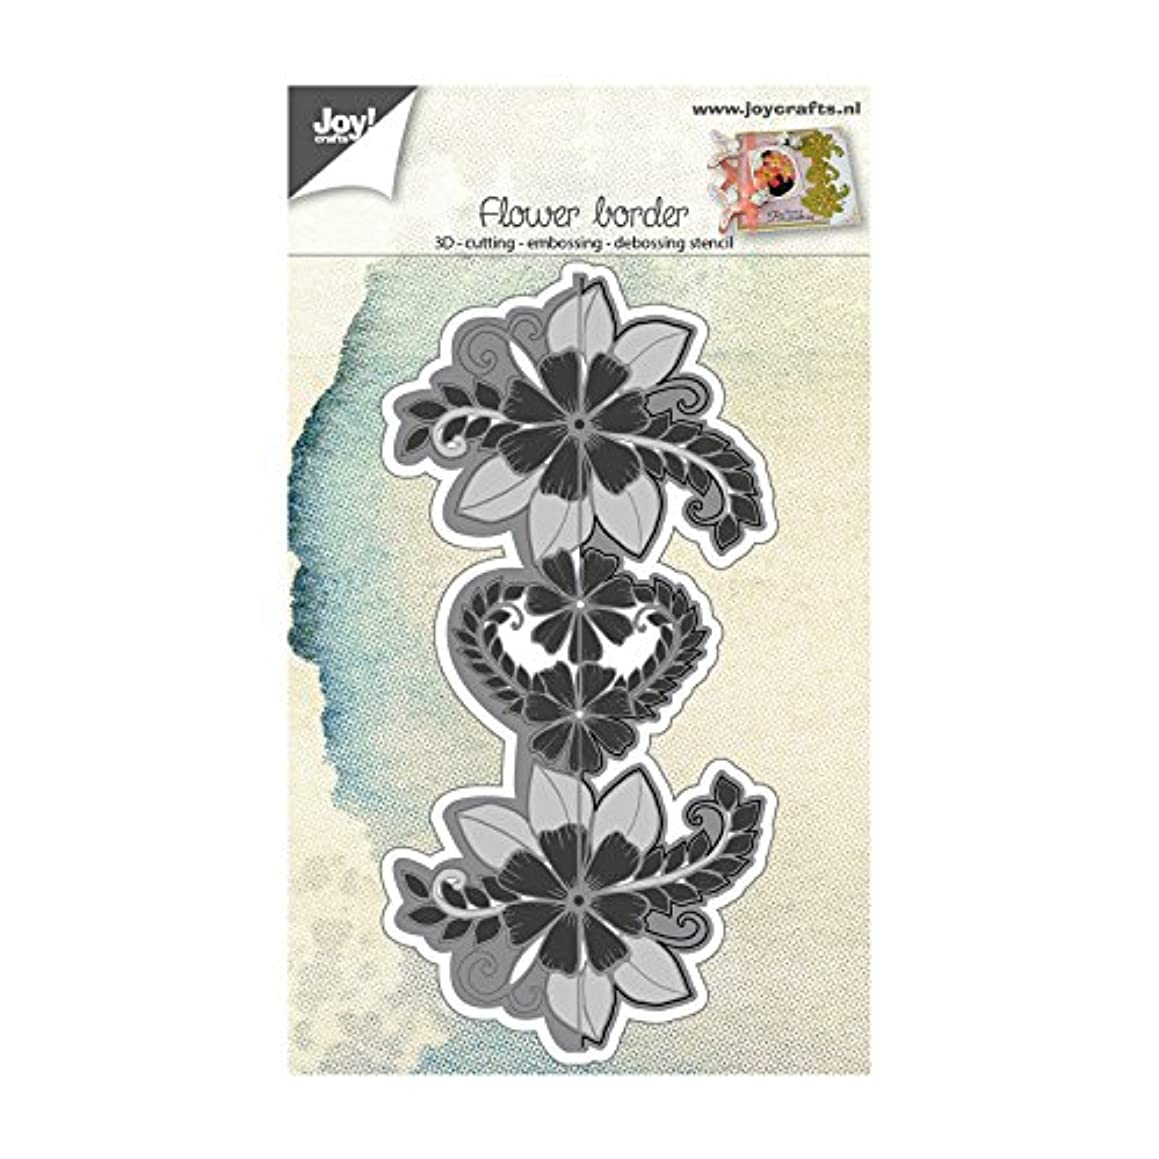 Joy Crafts - Cut-Emboss-Deboss Die 3D - Endless Flower Border